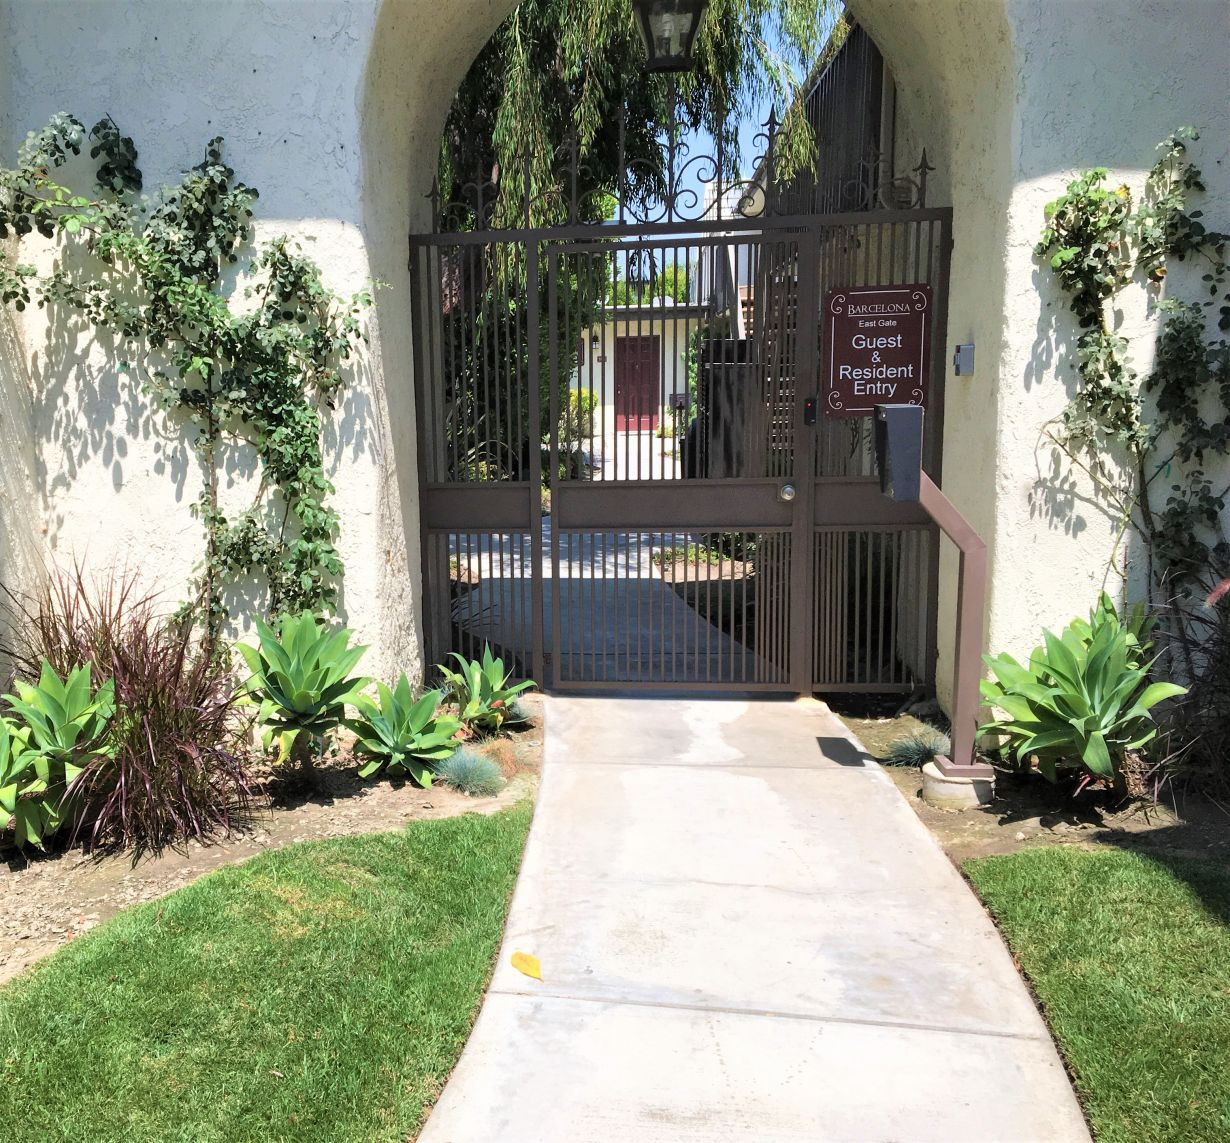 Apartments For Rent In Bellflower Ca: 11555 216th Street